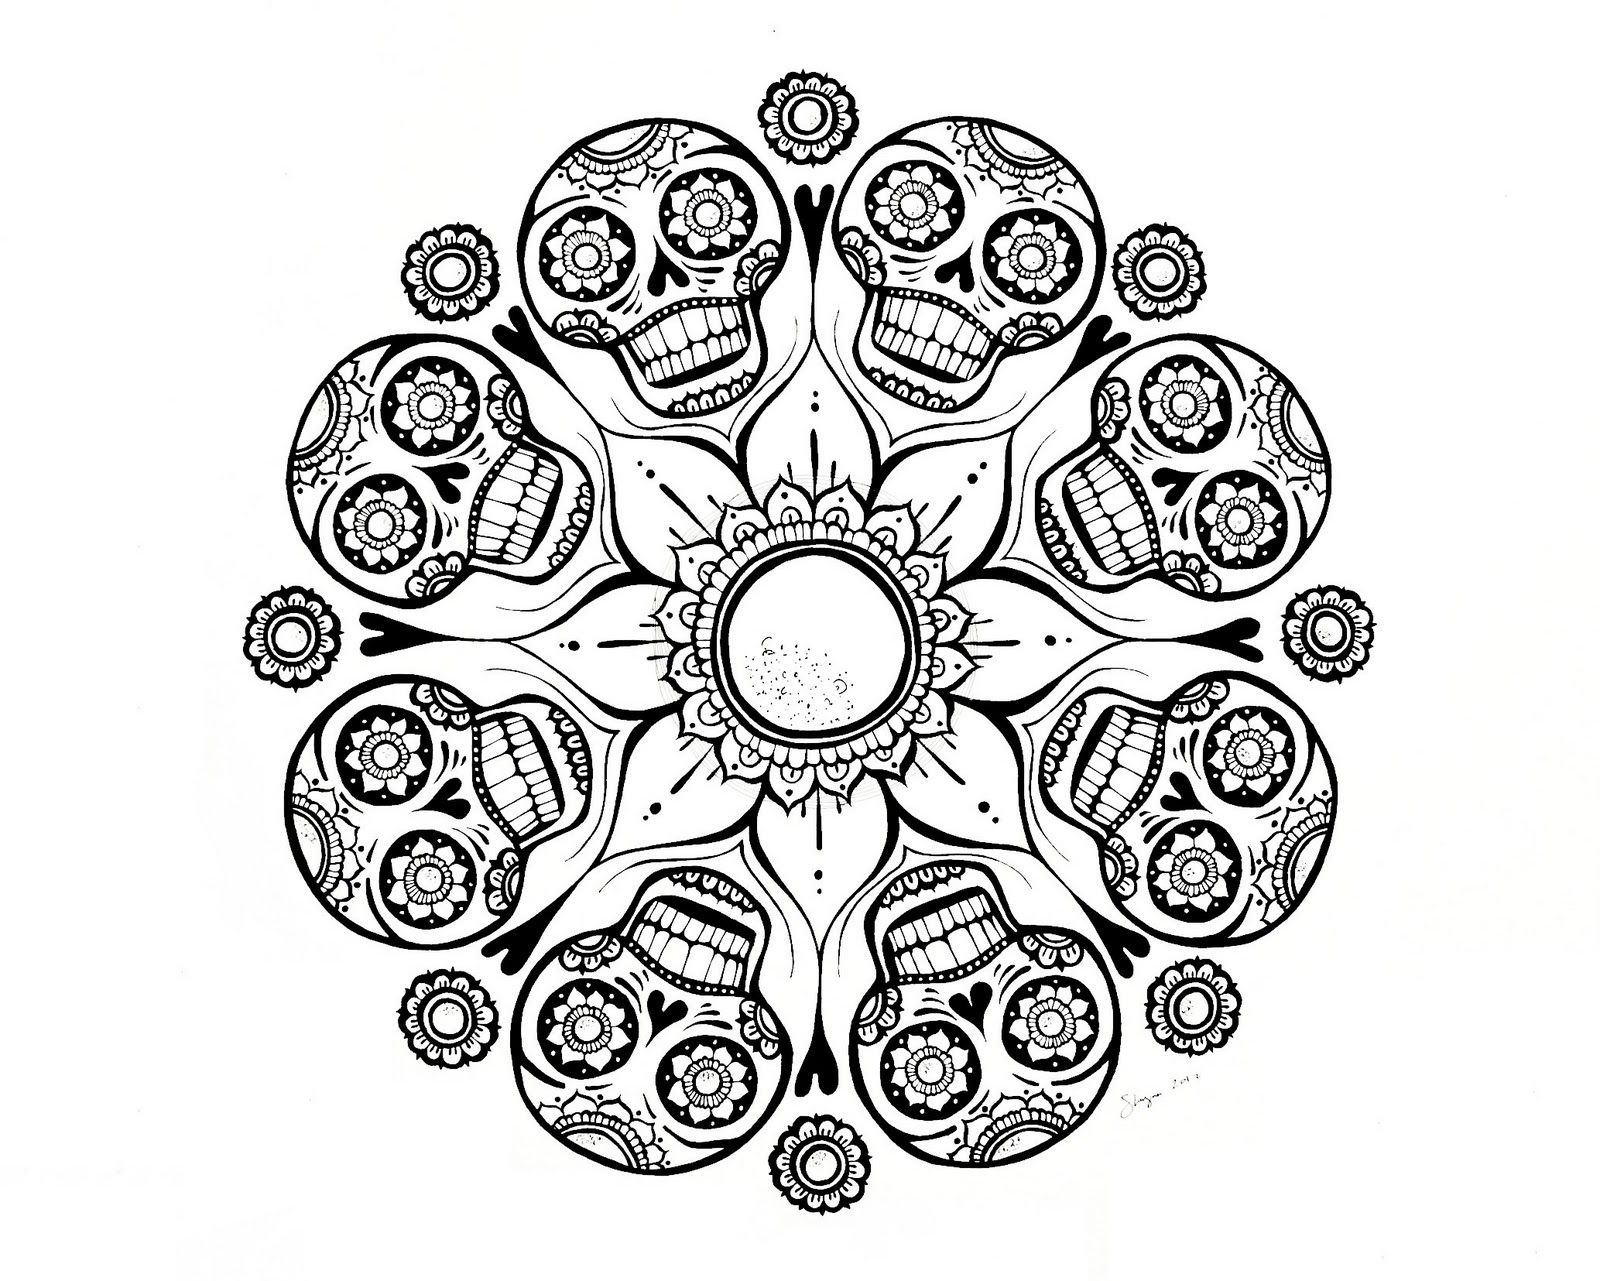 Skull Mandala Coloring Pages Collection Of Modern Intricate Mandala Coloring Pages Coloring for Good Mandala to Print